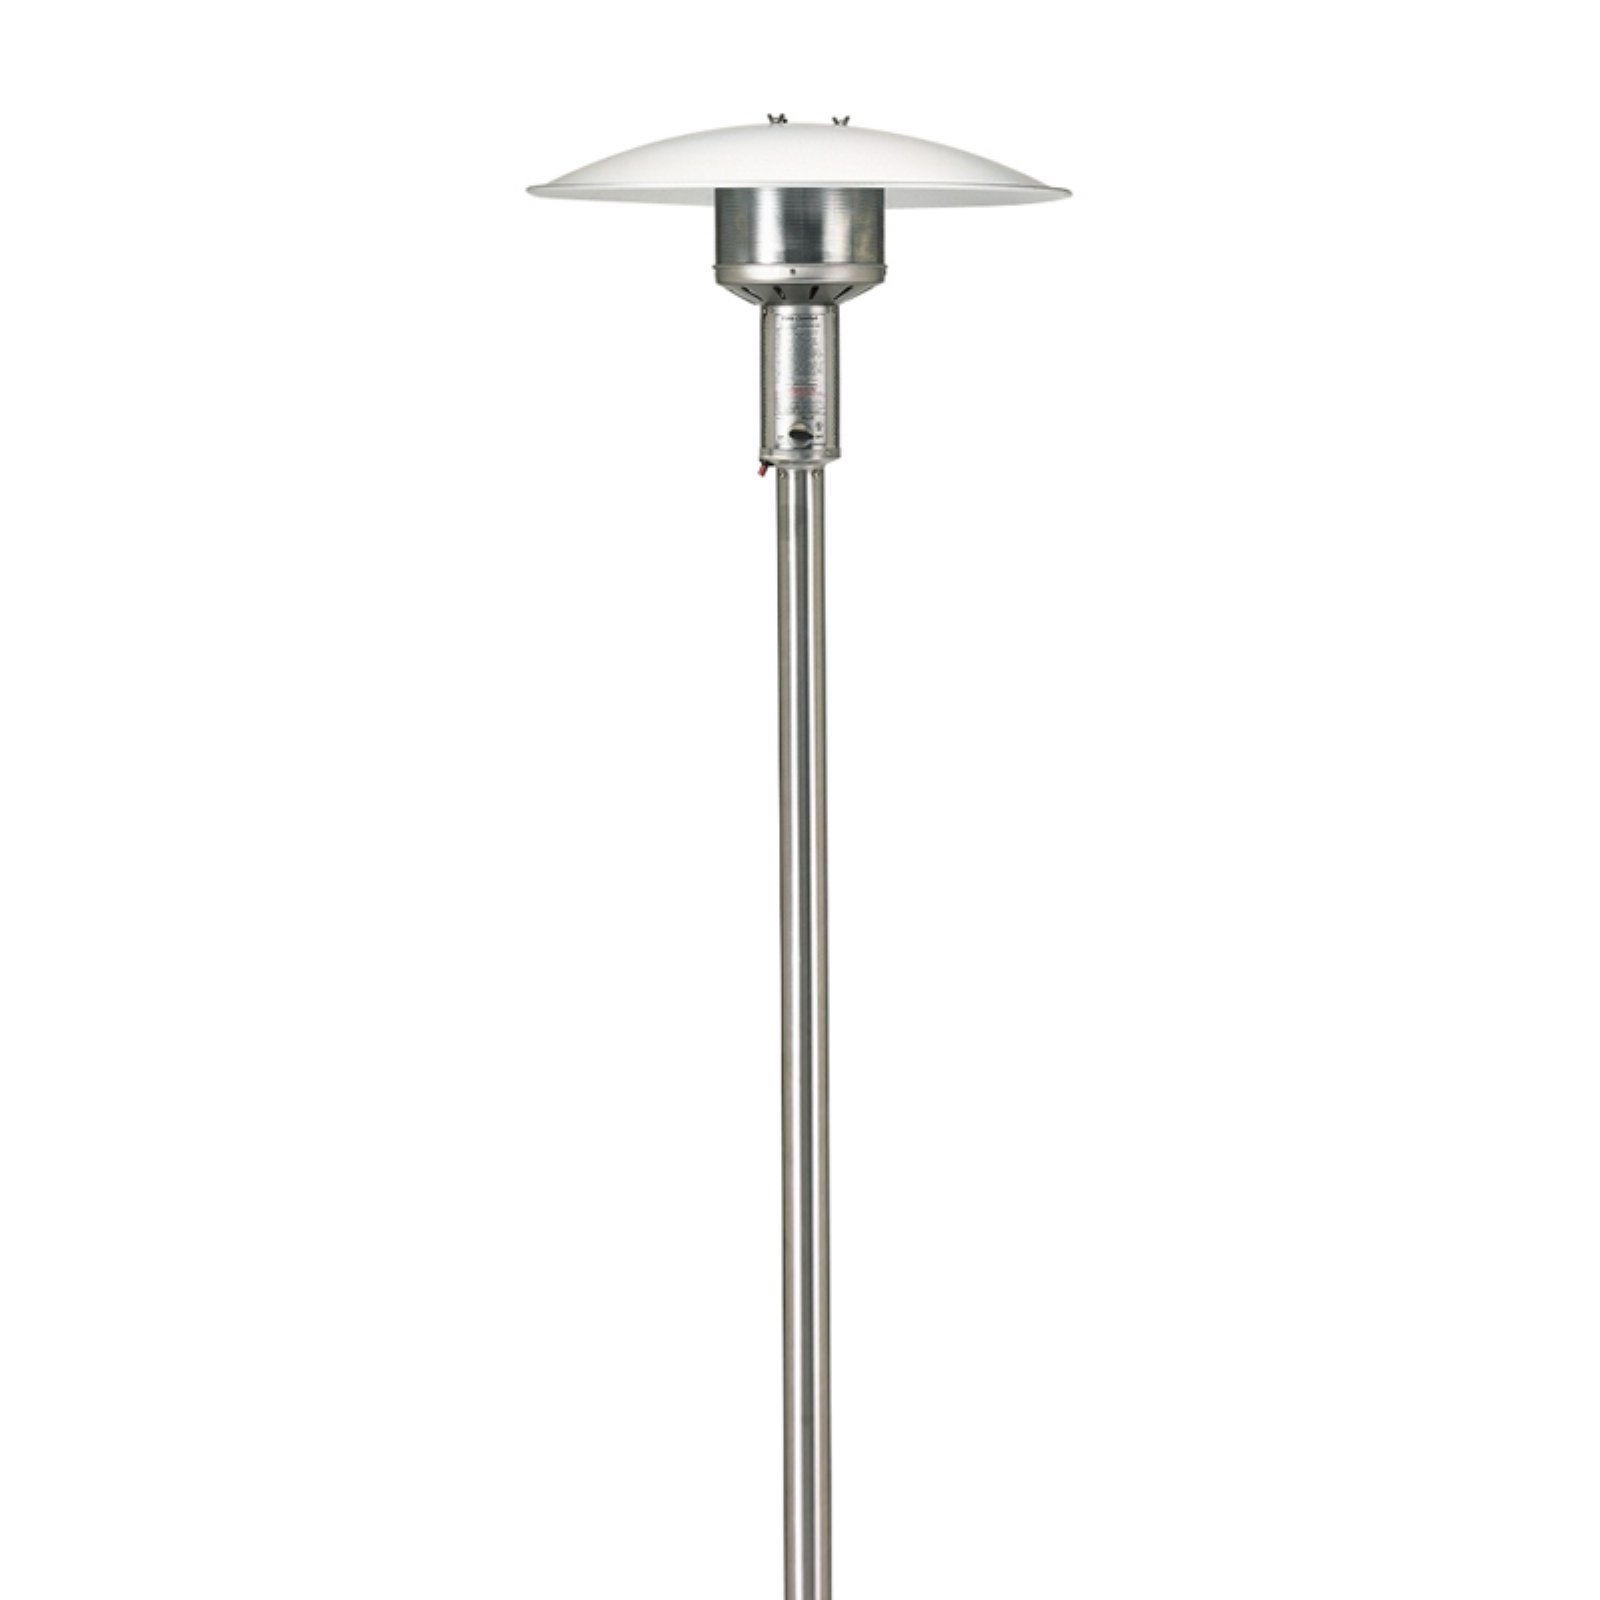 Patio Comfort Natural Gas Permanent Post Patio Heater by AEI Corporation